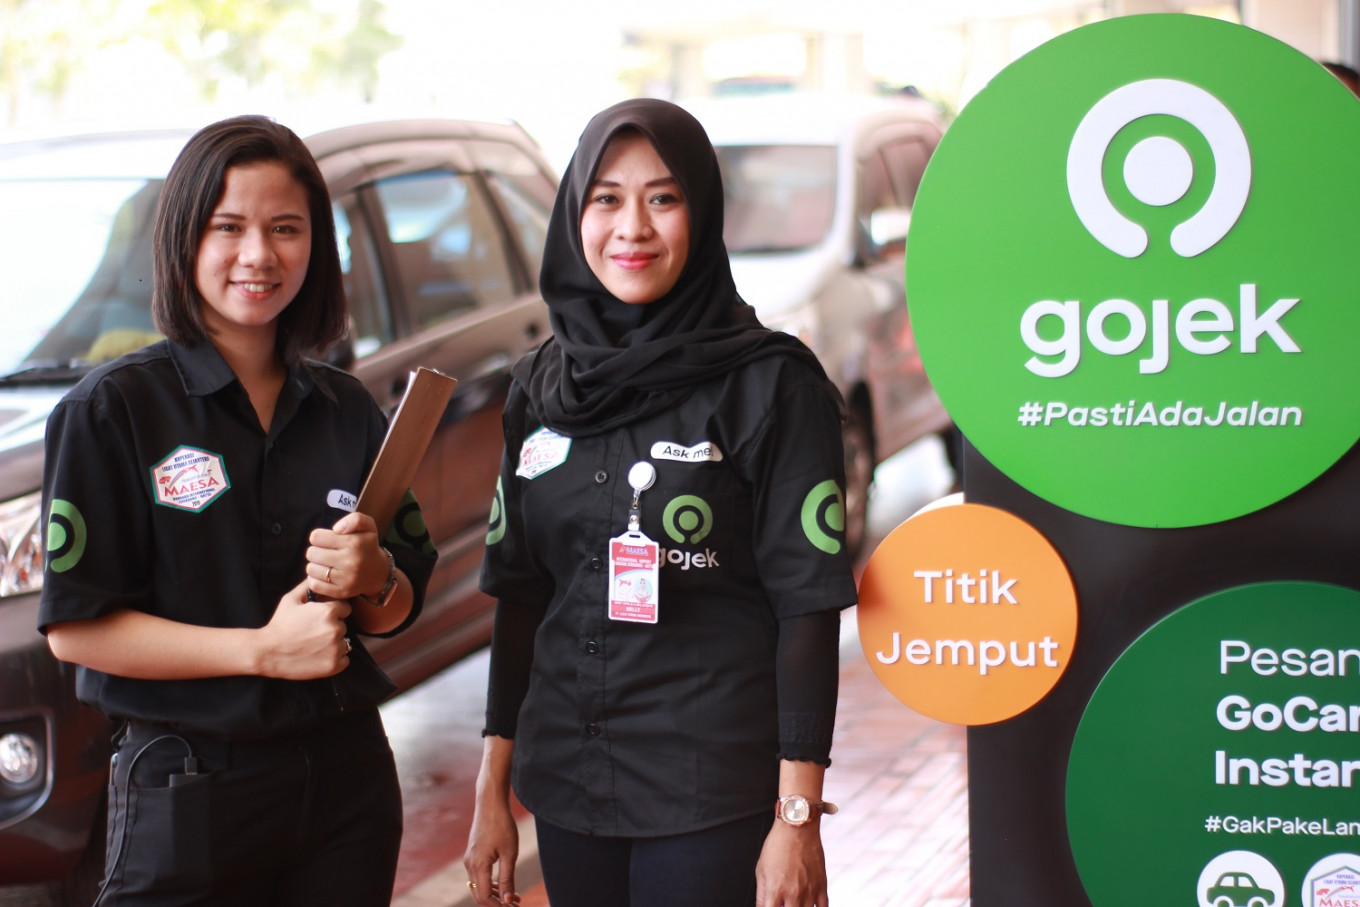 Soekarno-Hatta airport embraces online ride-hailing after years of resistance